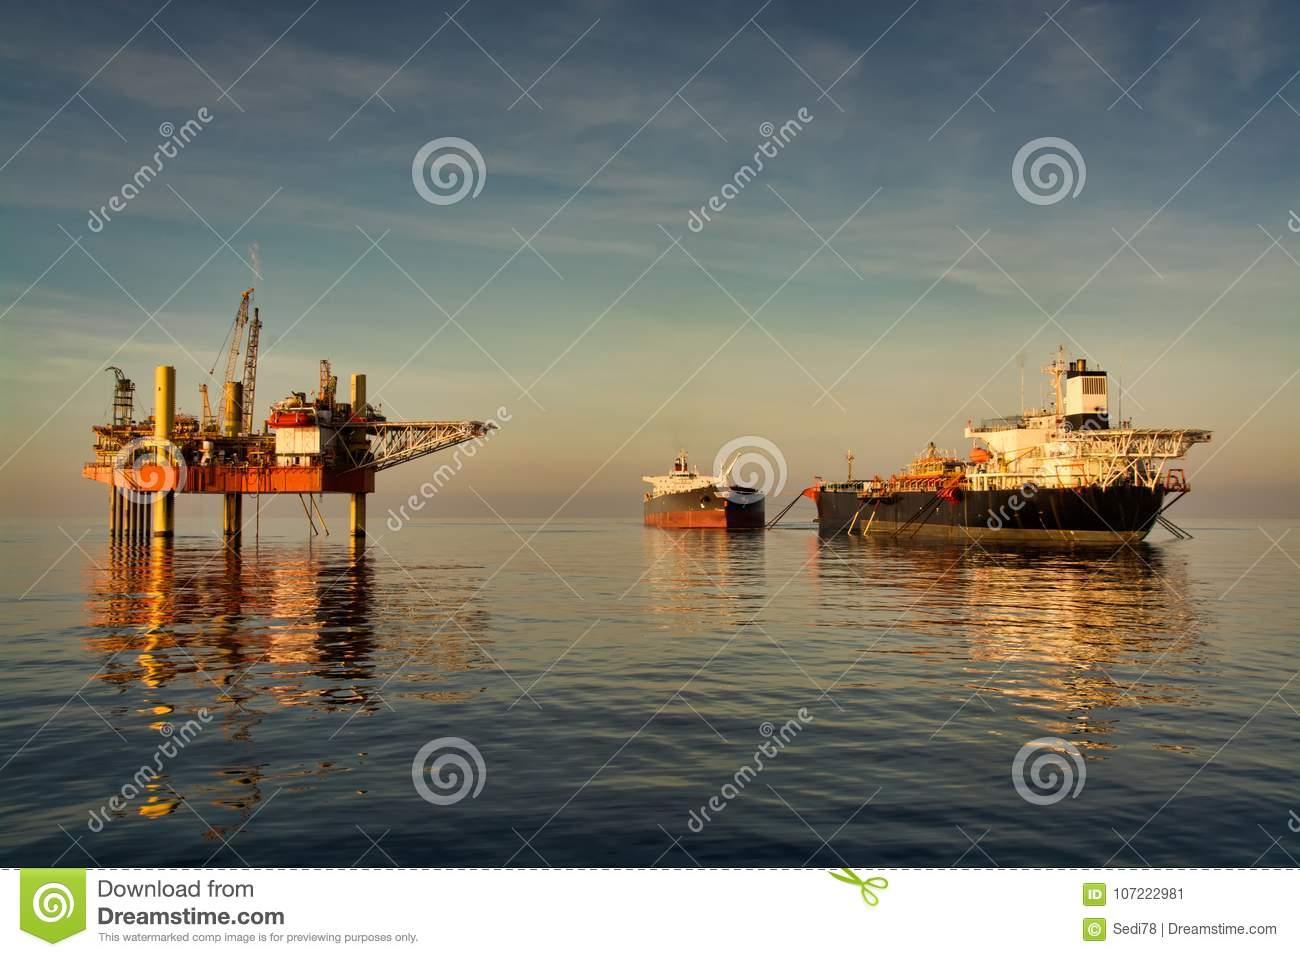 Oil platform with floating production storage and offloading FPSO